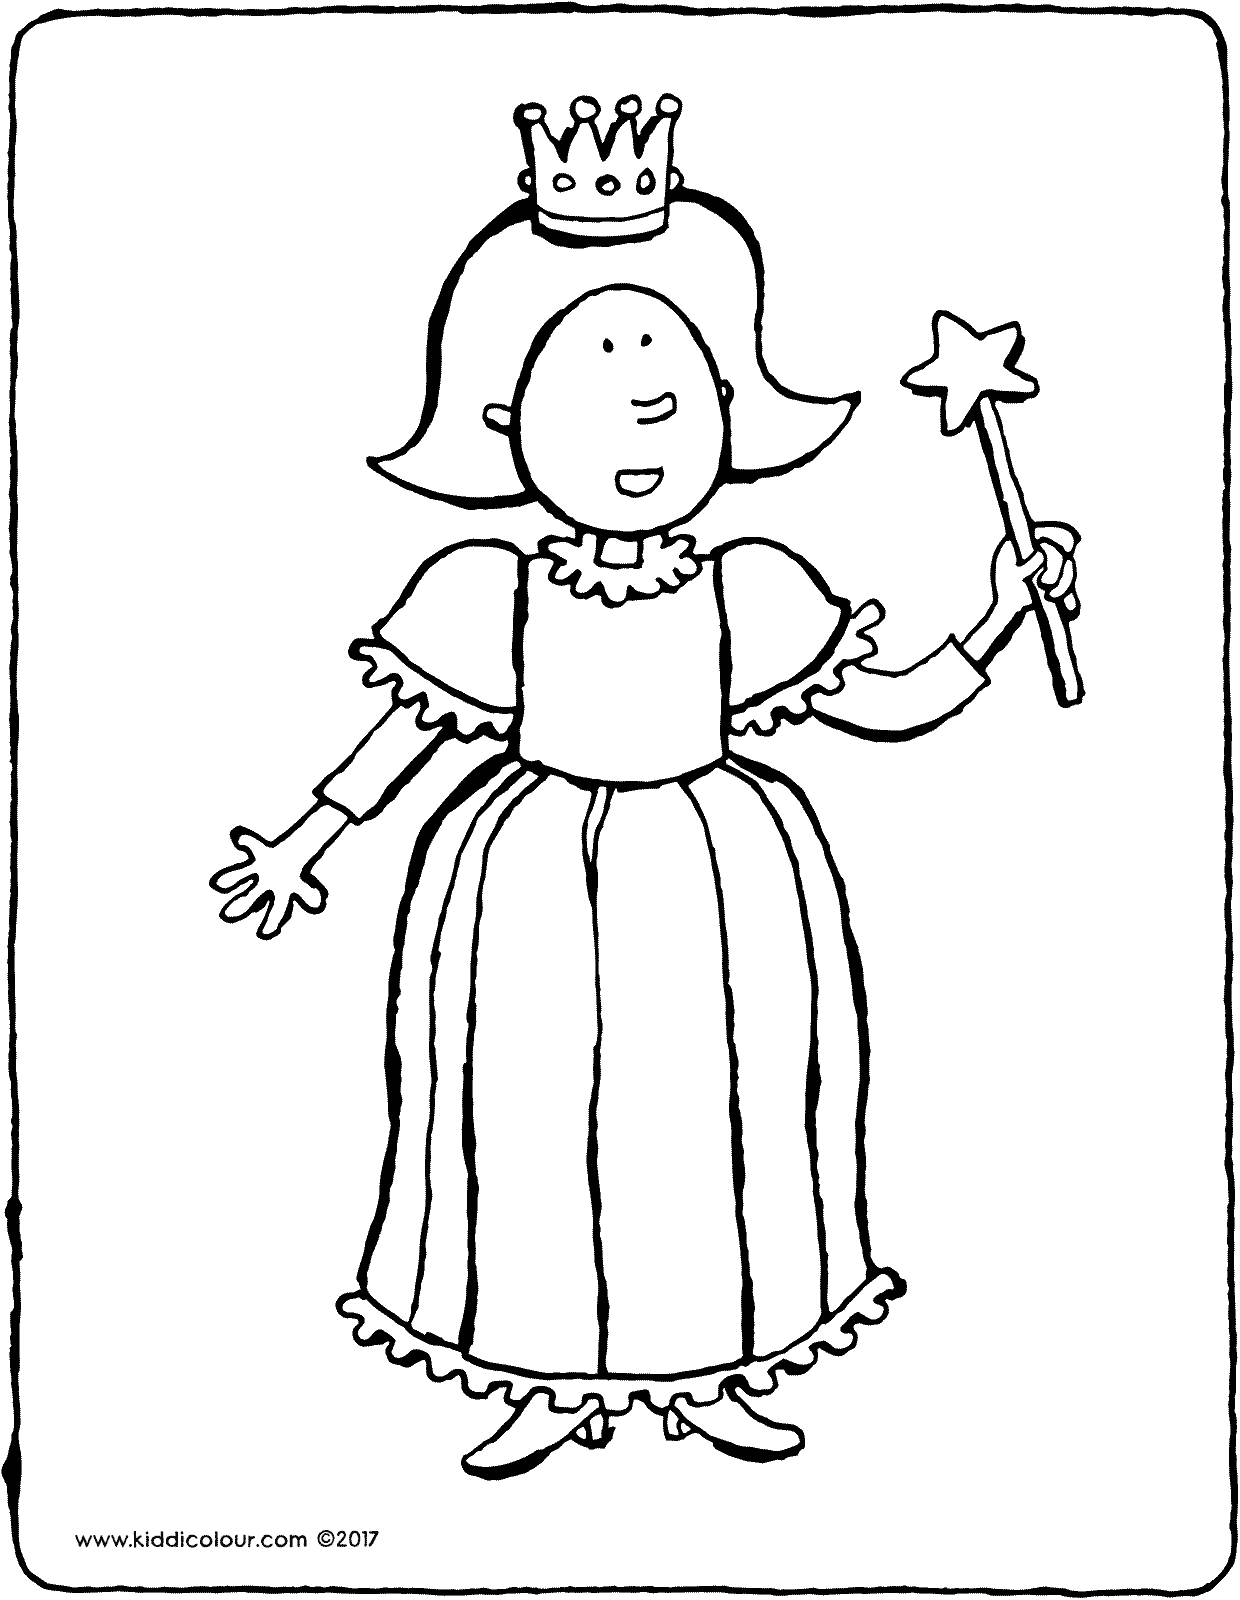 Princess Emma colouring page drawing picture 01V